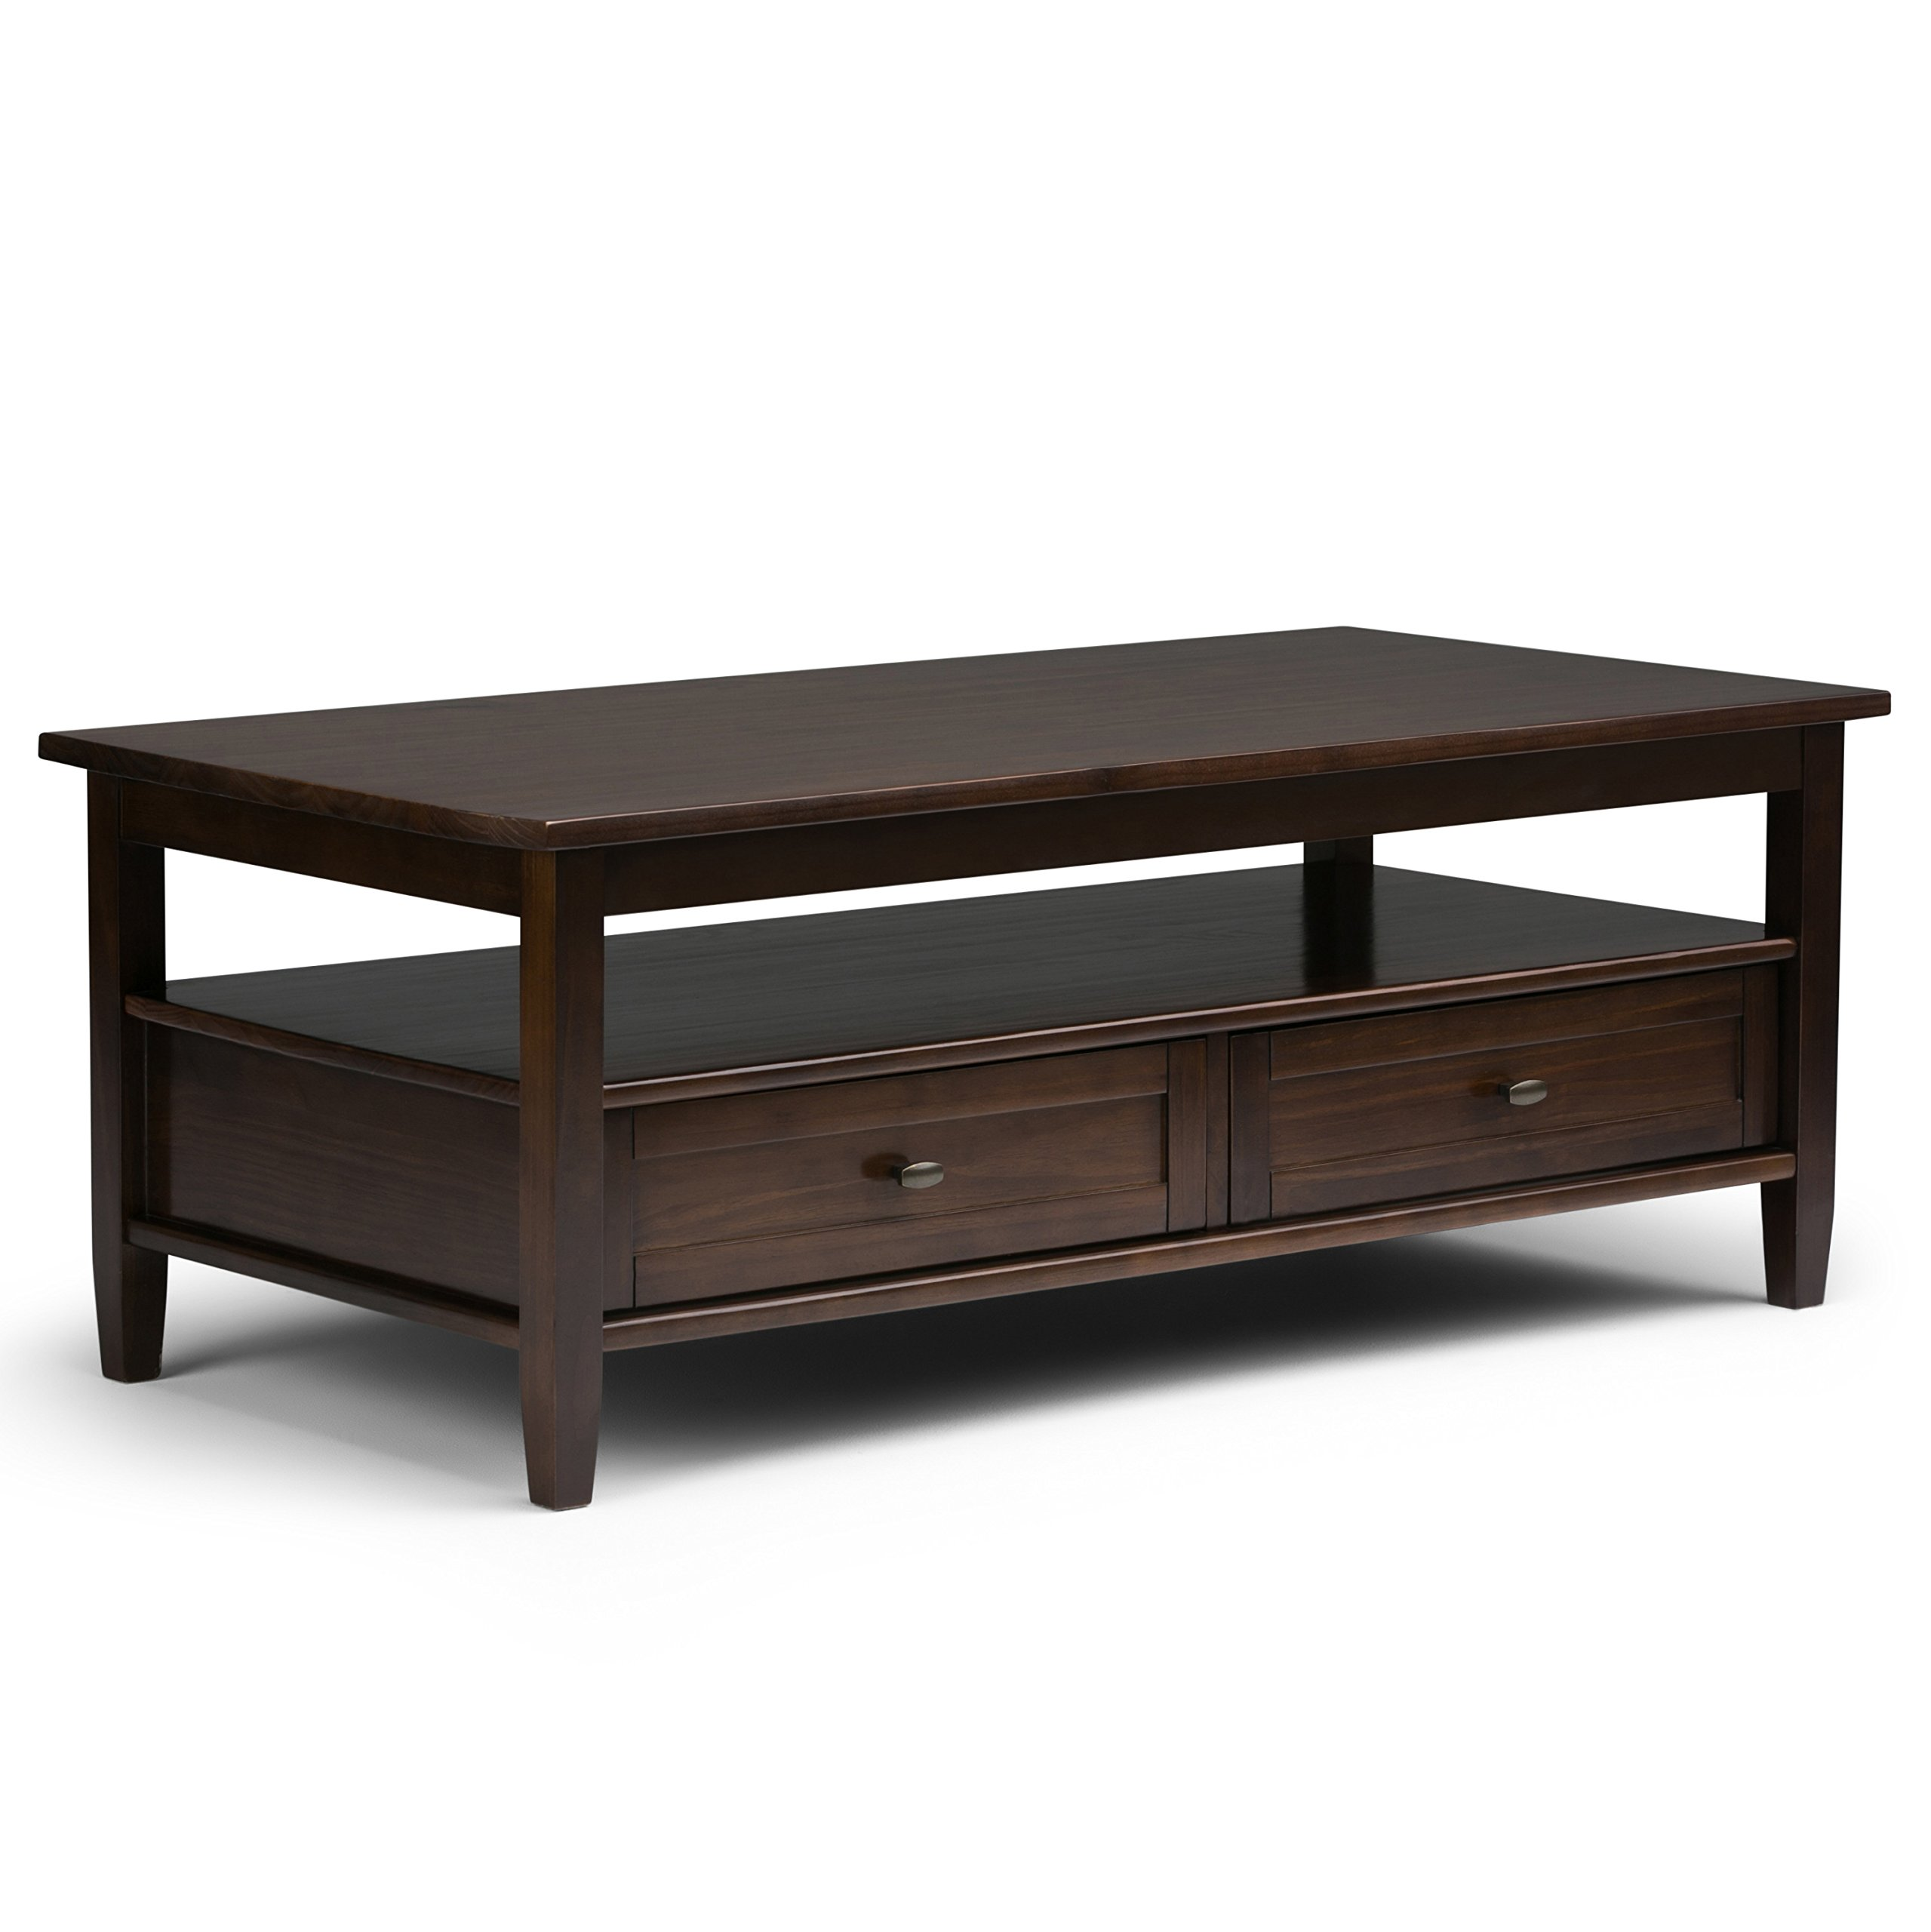 Simpli Home Warm Shaker Solid Wood Coffee Table, Tobacco Brown by Simpli Home (Image #1)